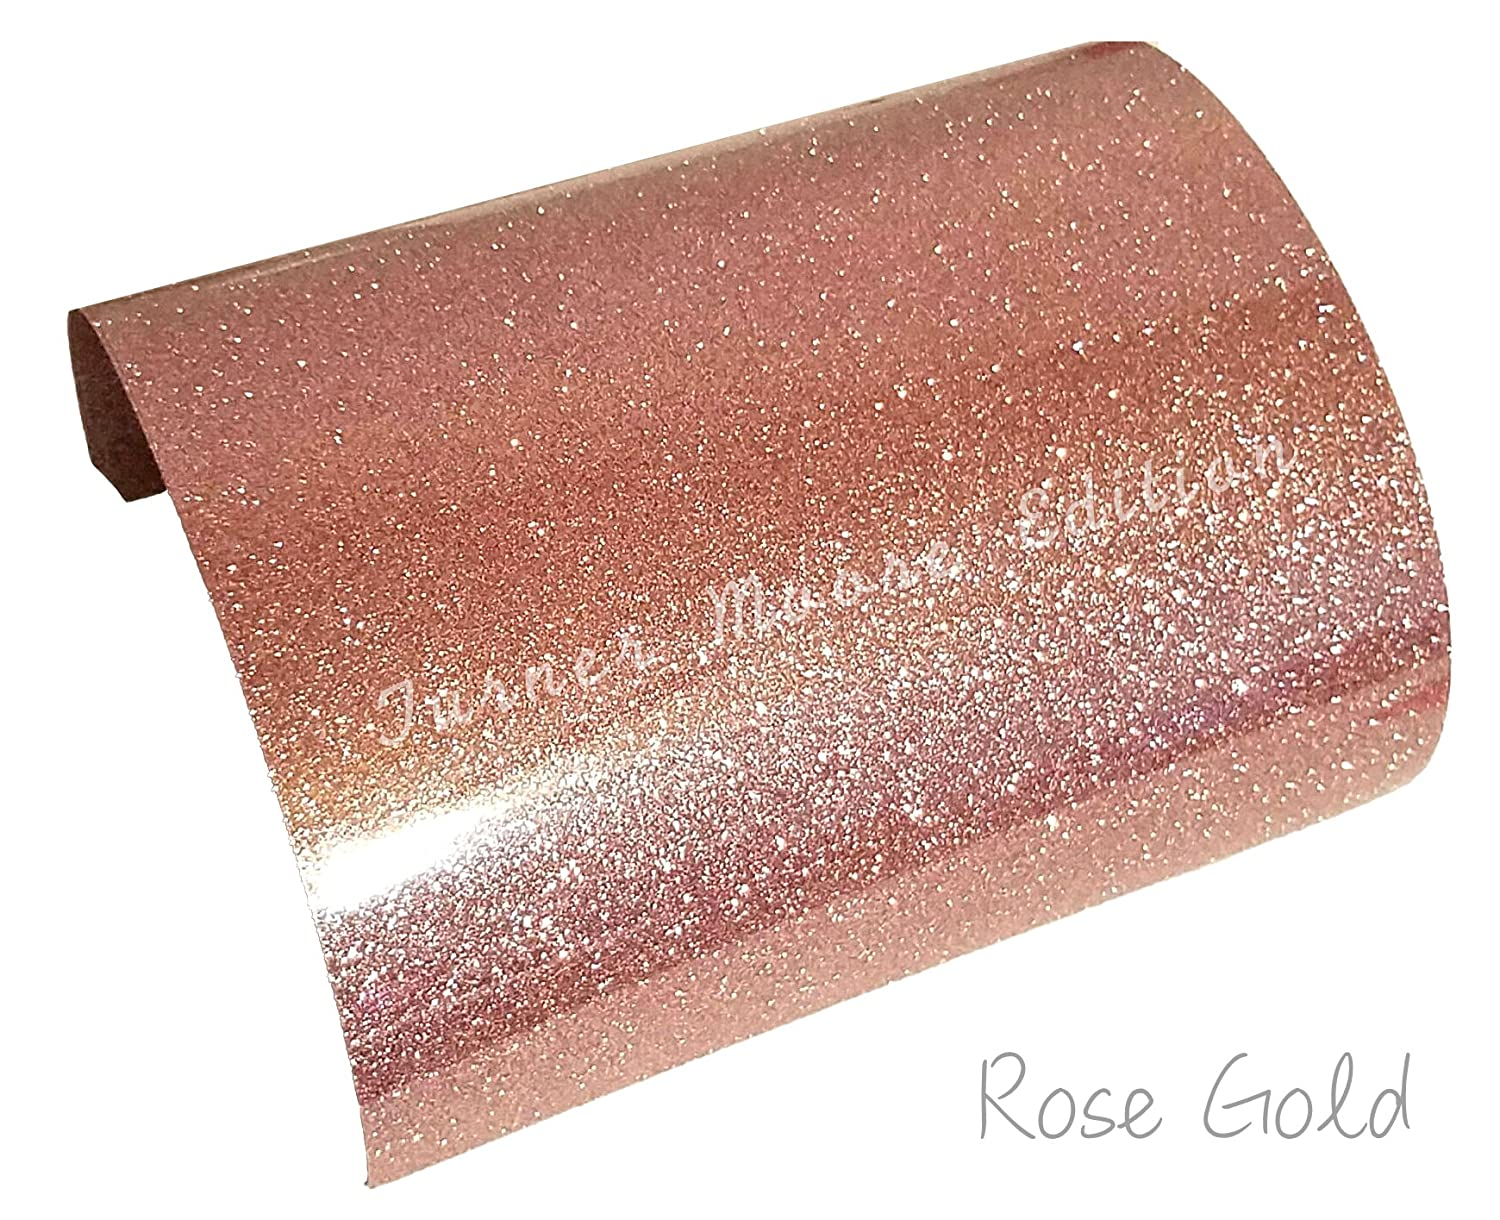 Signs ROSE GOLD Glitter Vinyl Sheets 12 x 12 Cricut Expression Explore 5-Pack Craft Vinyl Adhesive Turner Moore rose gold ultra glitter vinyl Stickers Decals by StyleTech Silhouette Cameo